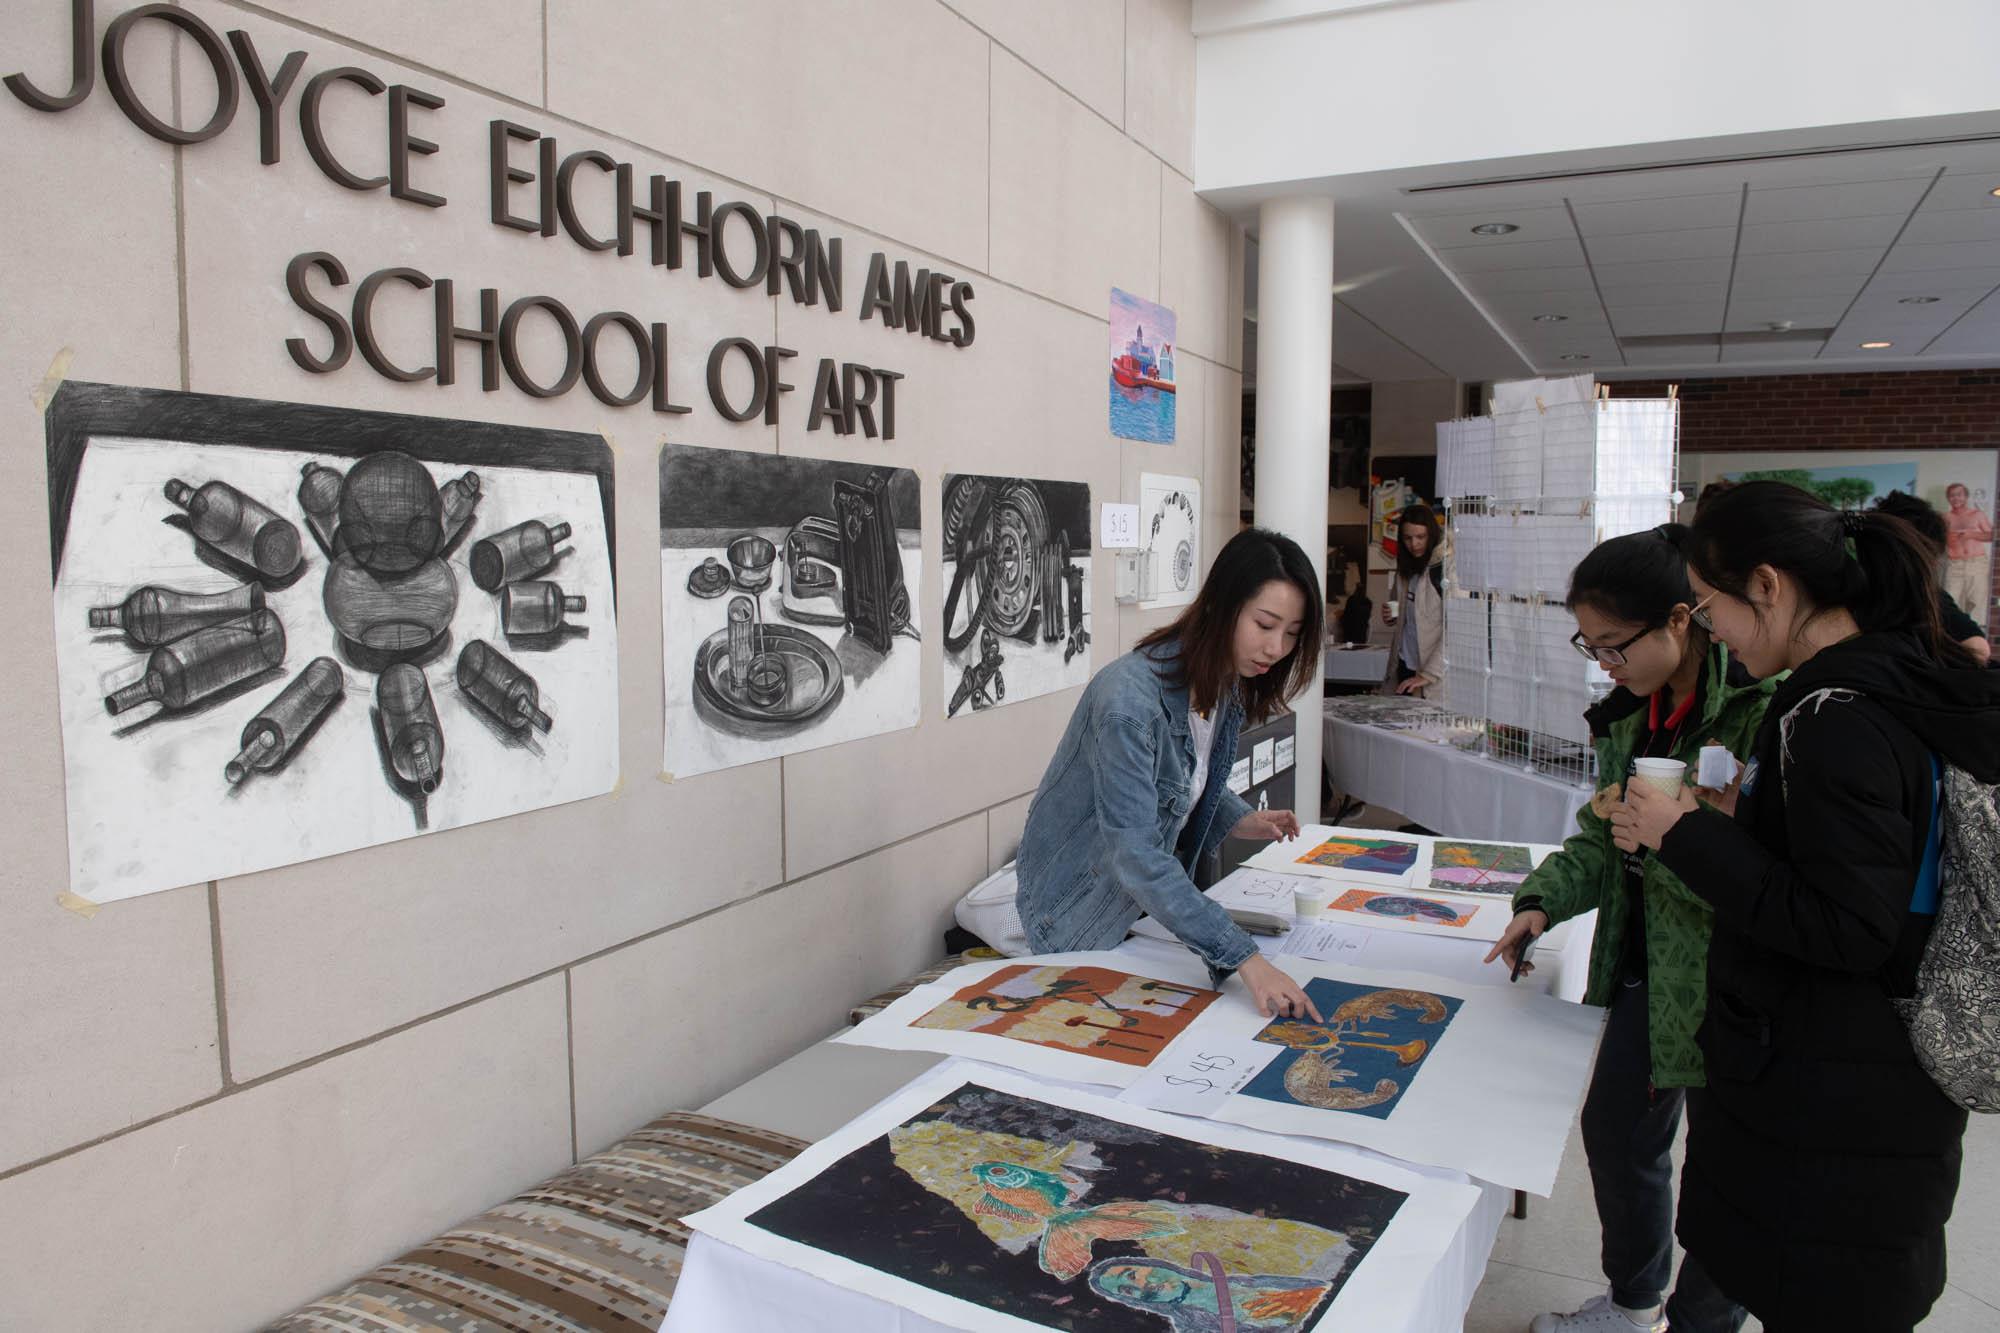 Student artist pointing at art print in front of Joyce Eichhorn Ames School of Art sign